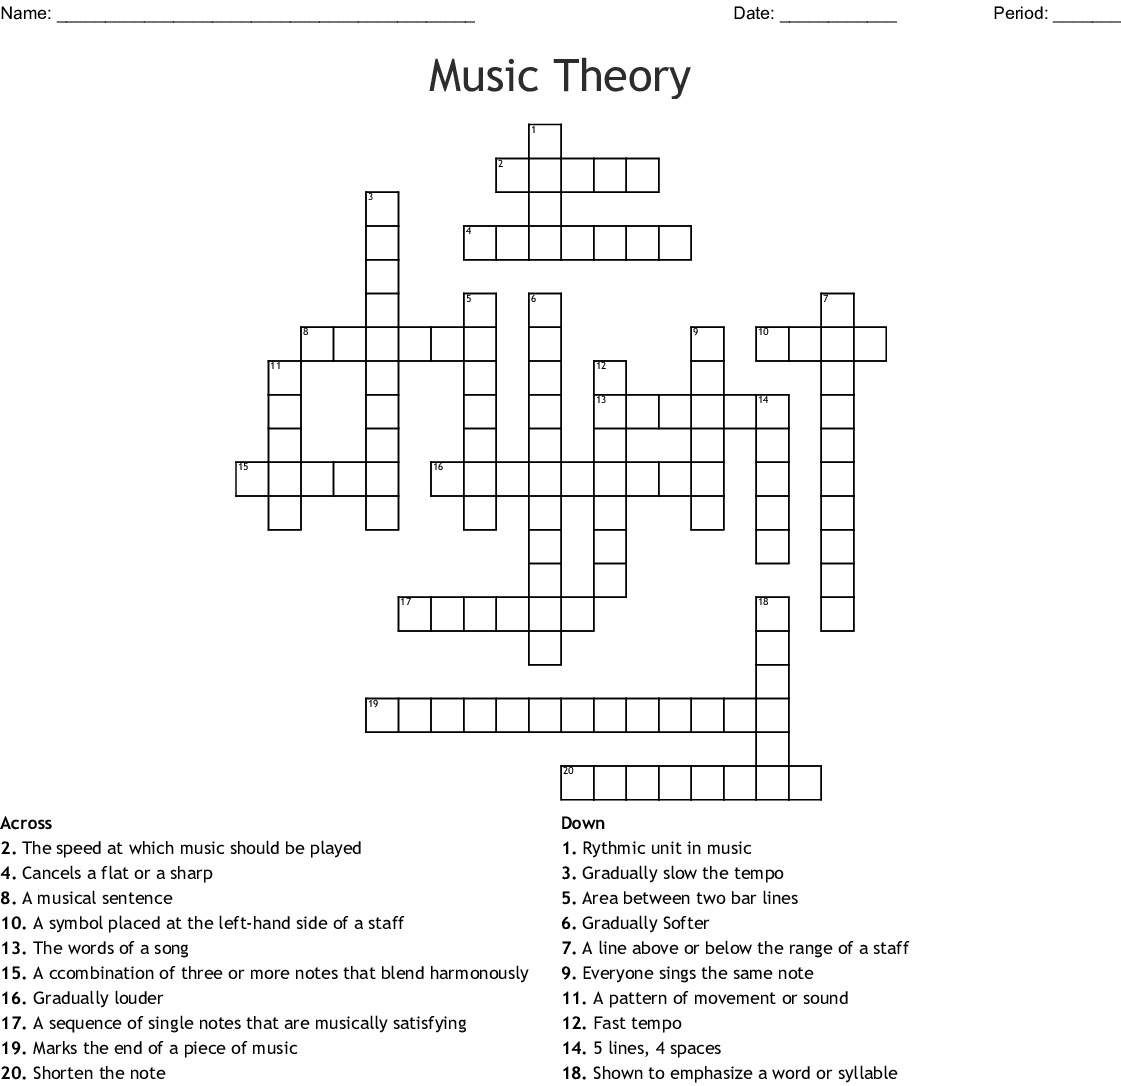 Music Theory Crossword - Wordmint - Printable Crossword Puzzles About Music